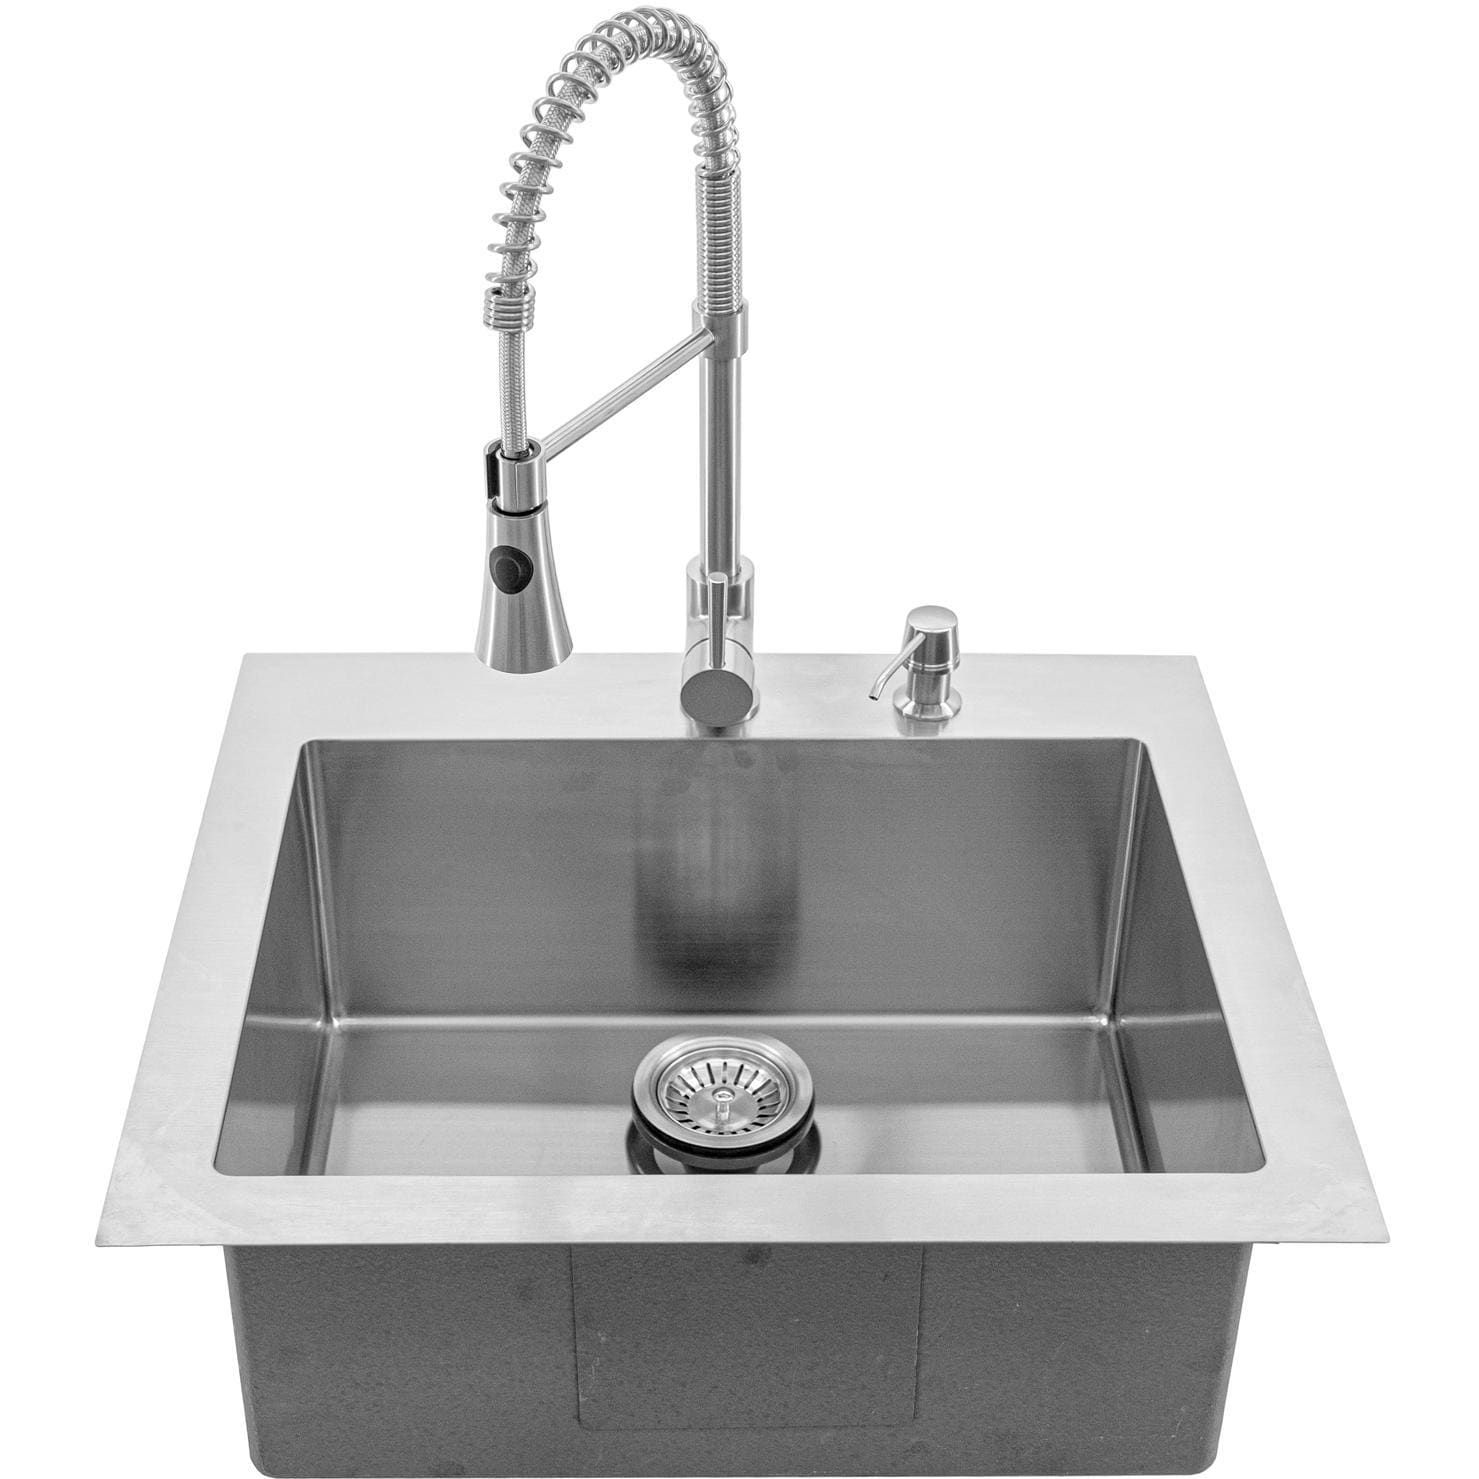 Bbqguys Signature 25 X 22 Outdoor Rated Stainless Steel Drop In Sink W Pull Down Coil Spring Ho In 2021 Stainless Steel Drop In Sink Drop In Sink Outdoor Kitchen Sink 25 x 22 stainless steel sink